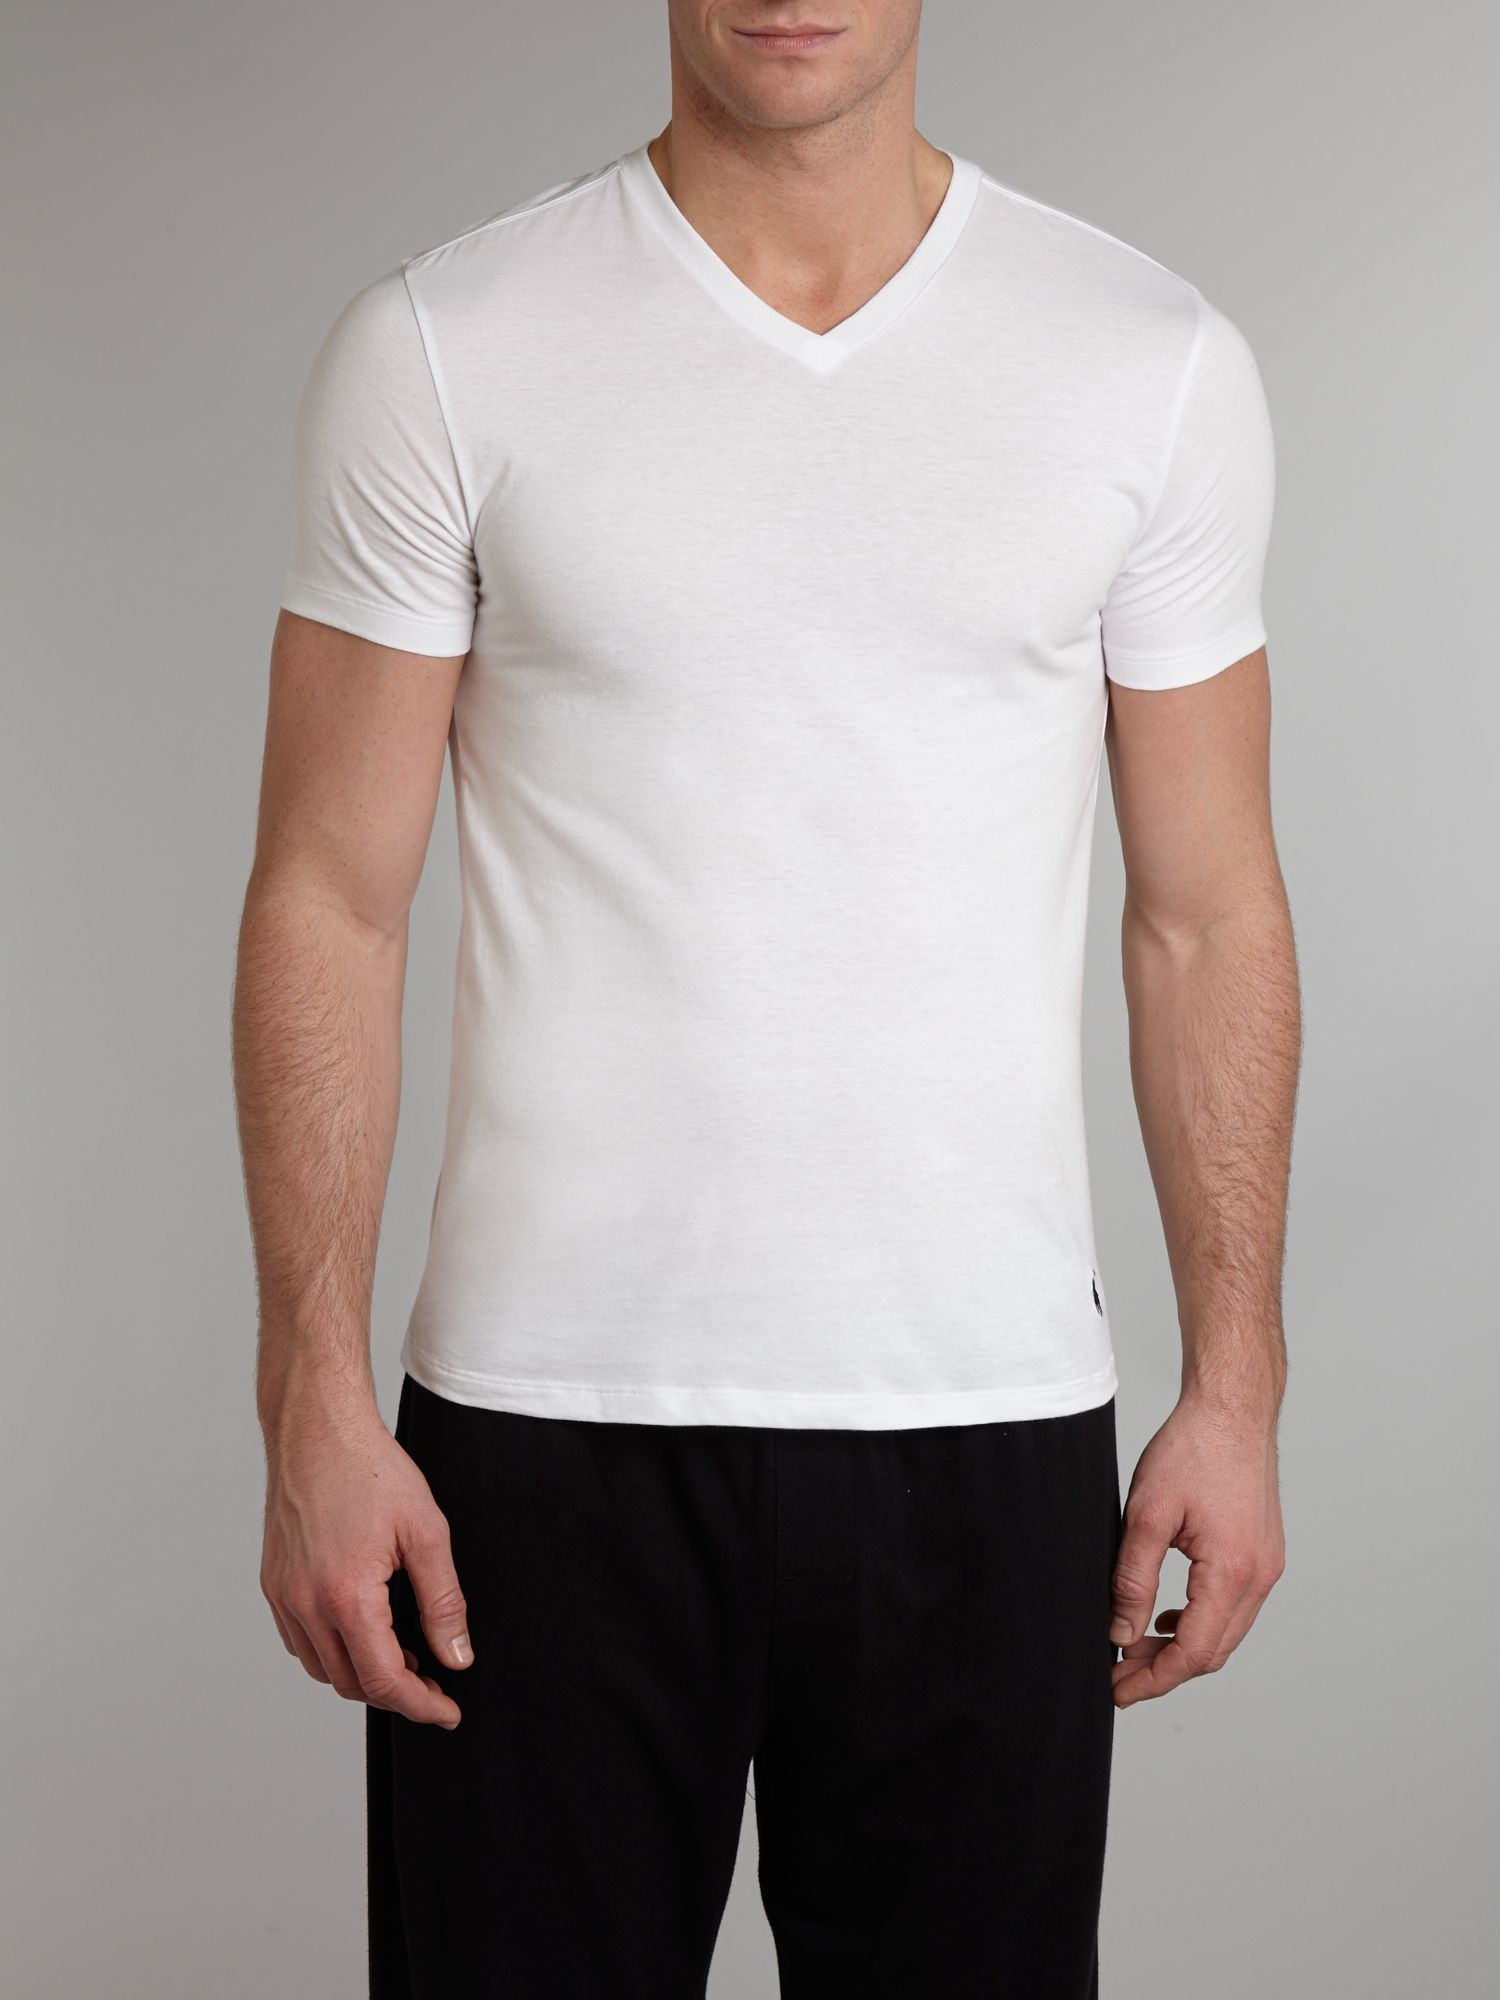 2 pack classic v neck t-shirt